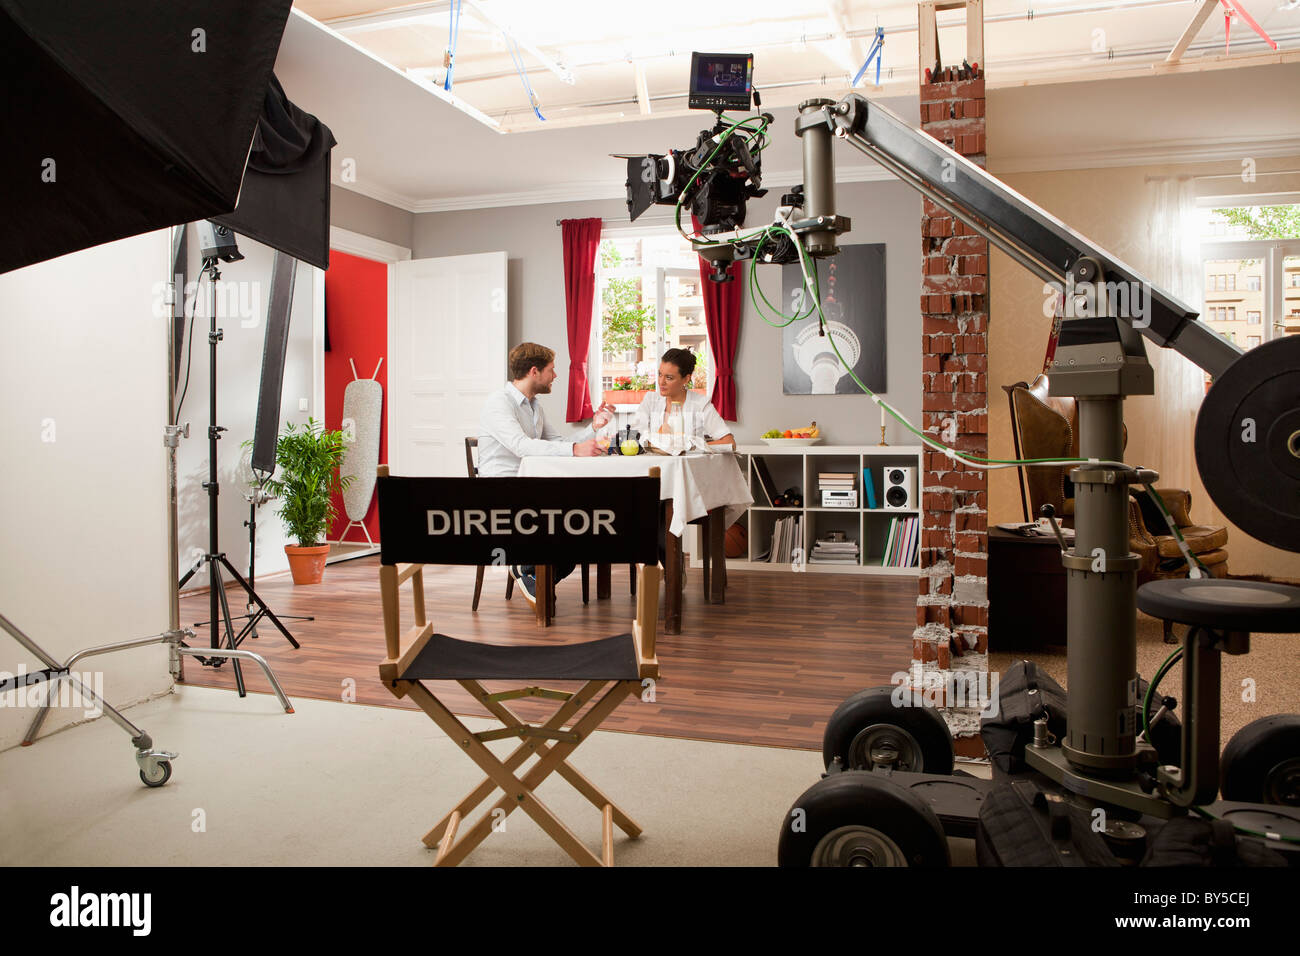 Actors Performing A Scene On A Film Set Stock Photo